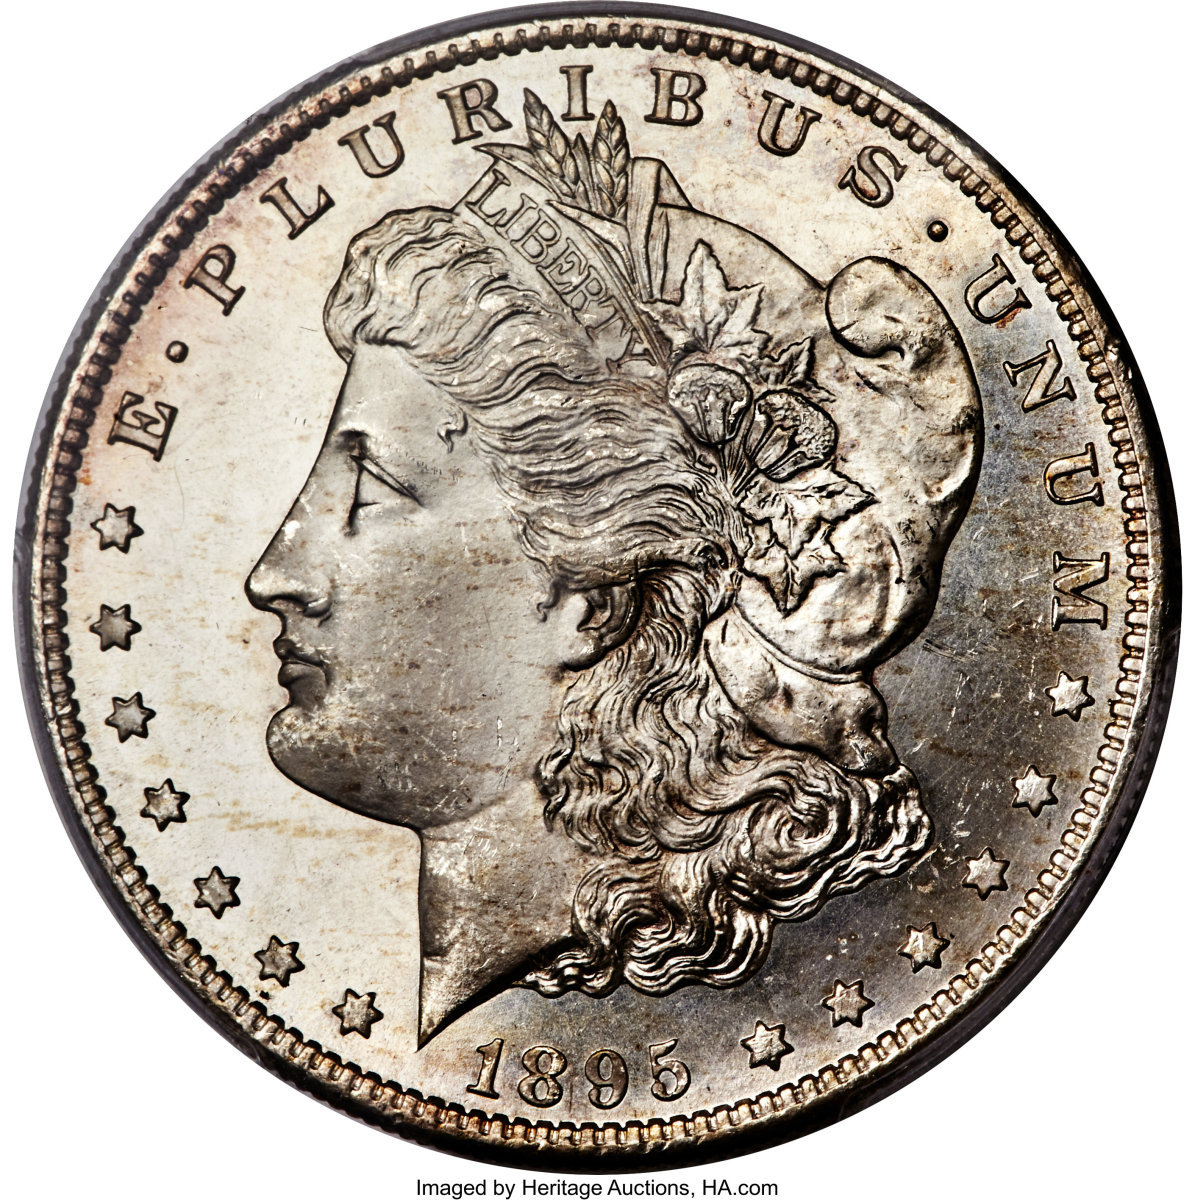 Lot 3802, has already exceeded the minimum bid of $80,000 for an 1895-S $1 MS66+ Prooflike PCGS Morgan silver dollar. (Image courtesy of Heritage Auctions)